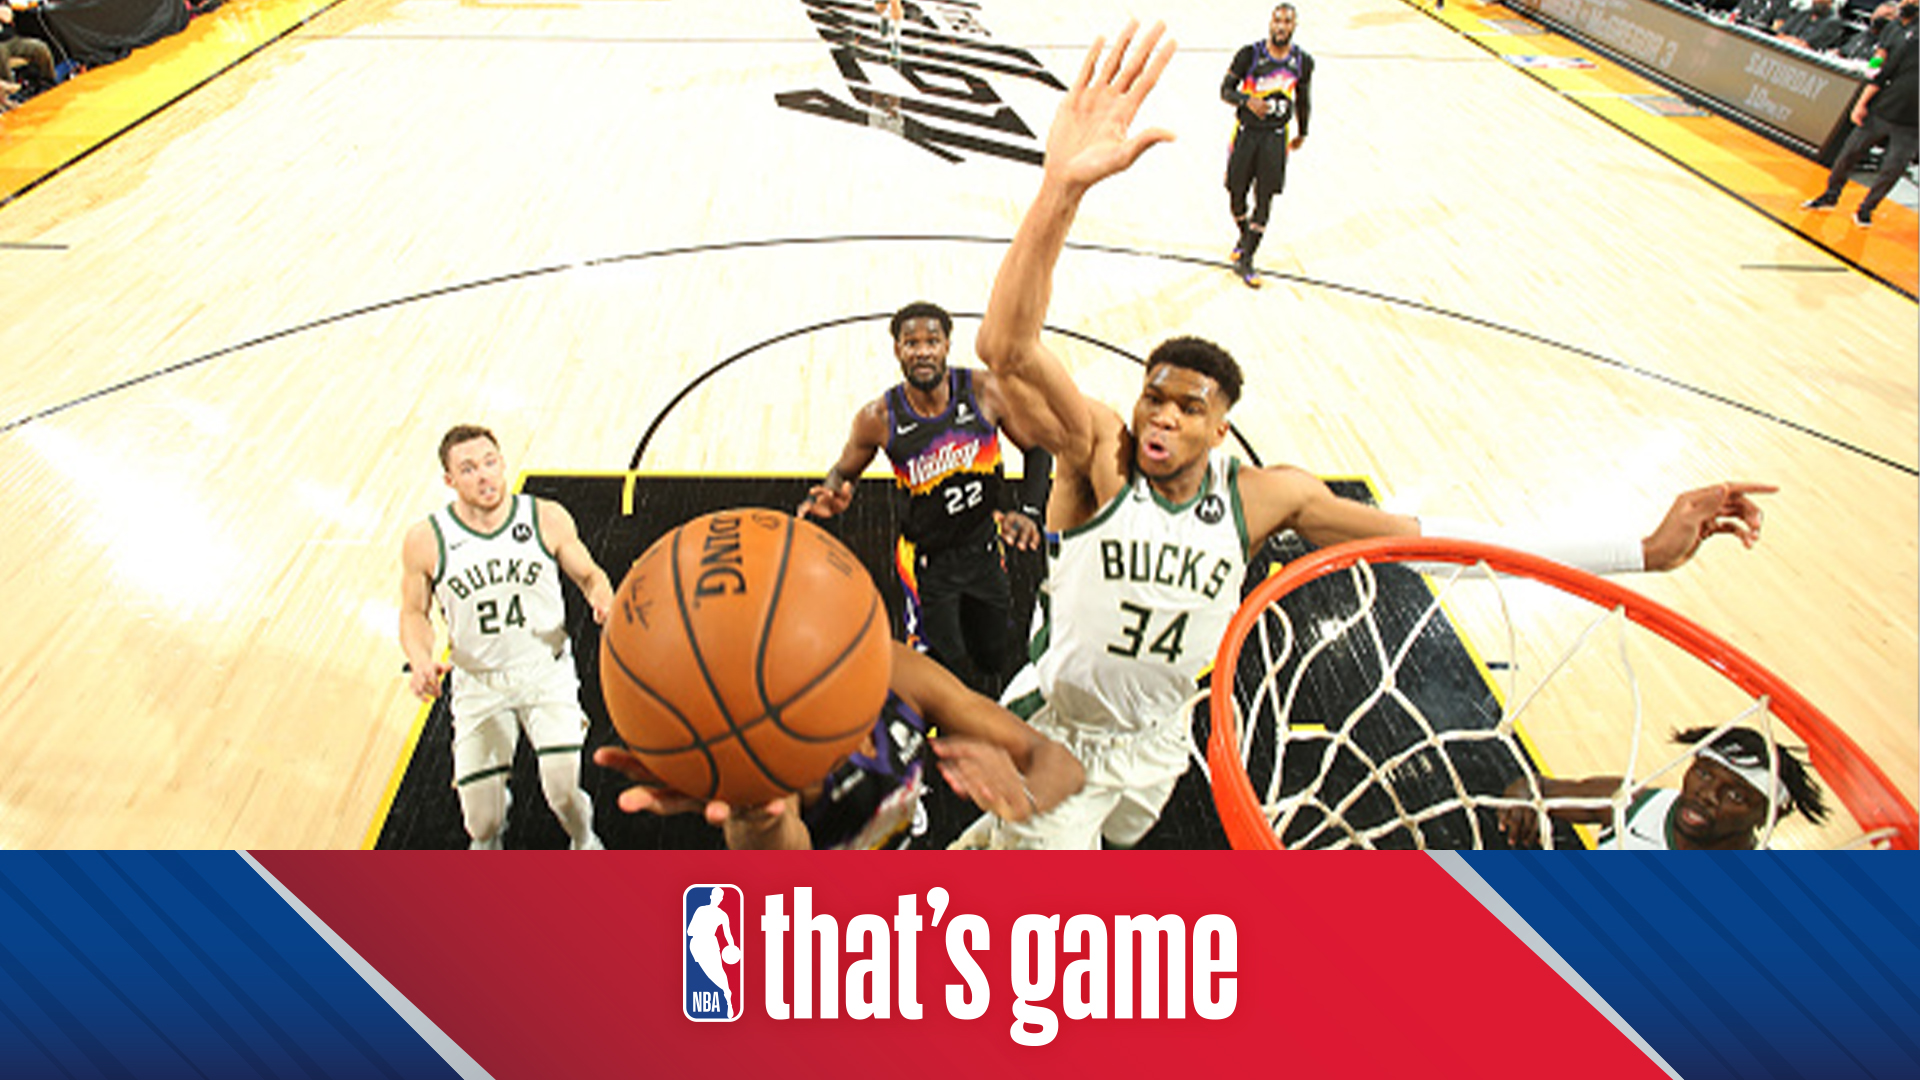 Play of the Day: Giannis incredible chasedown block